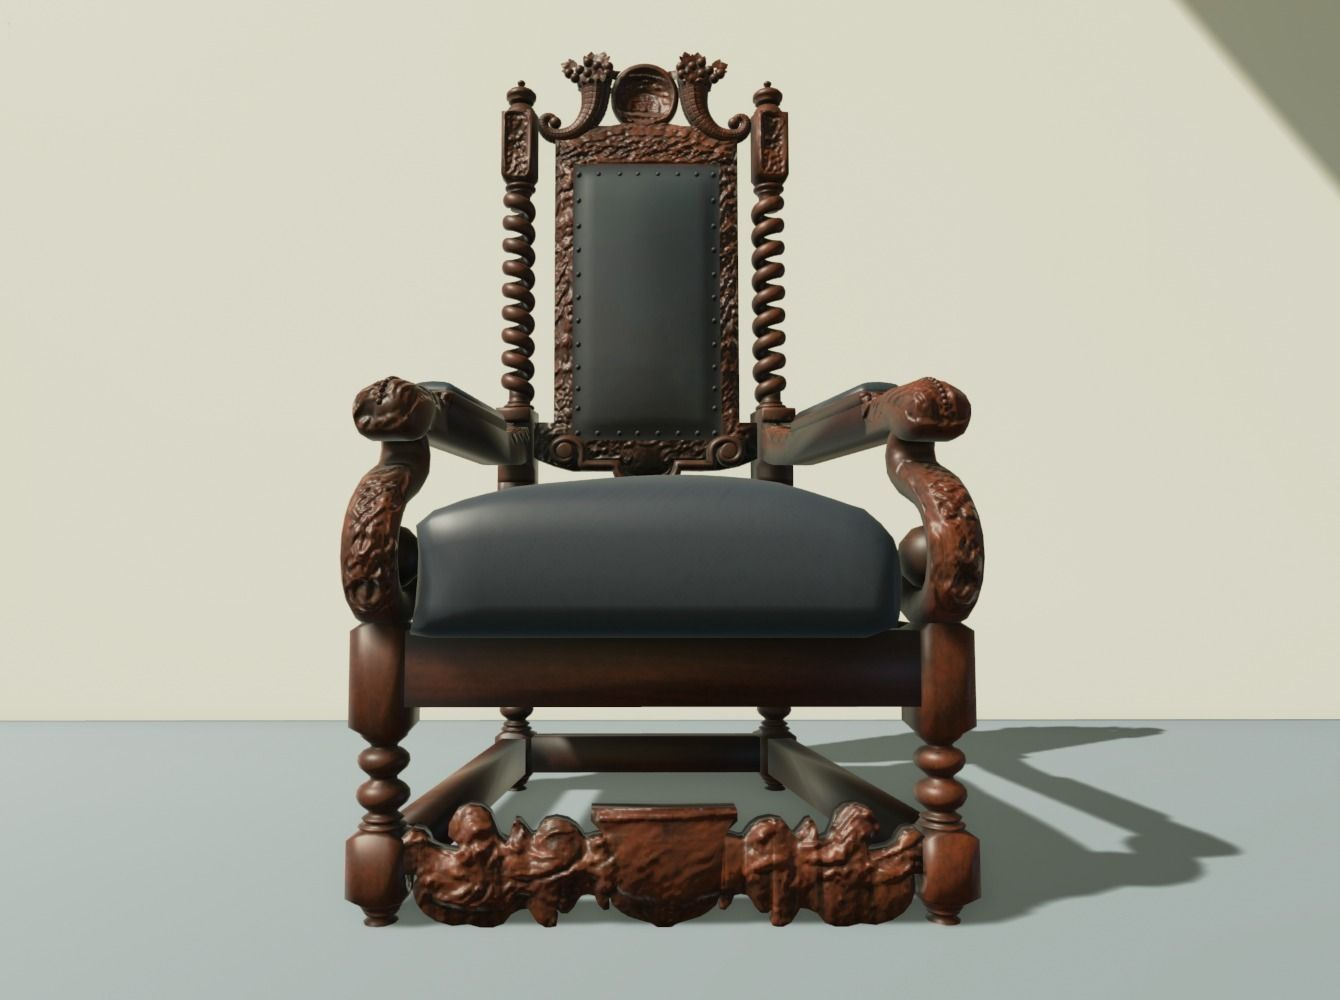 ... antique throne chair 3d model rigged obj mtl 2 ... - 3D Model Antique Throne Chair CGTrader